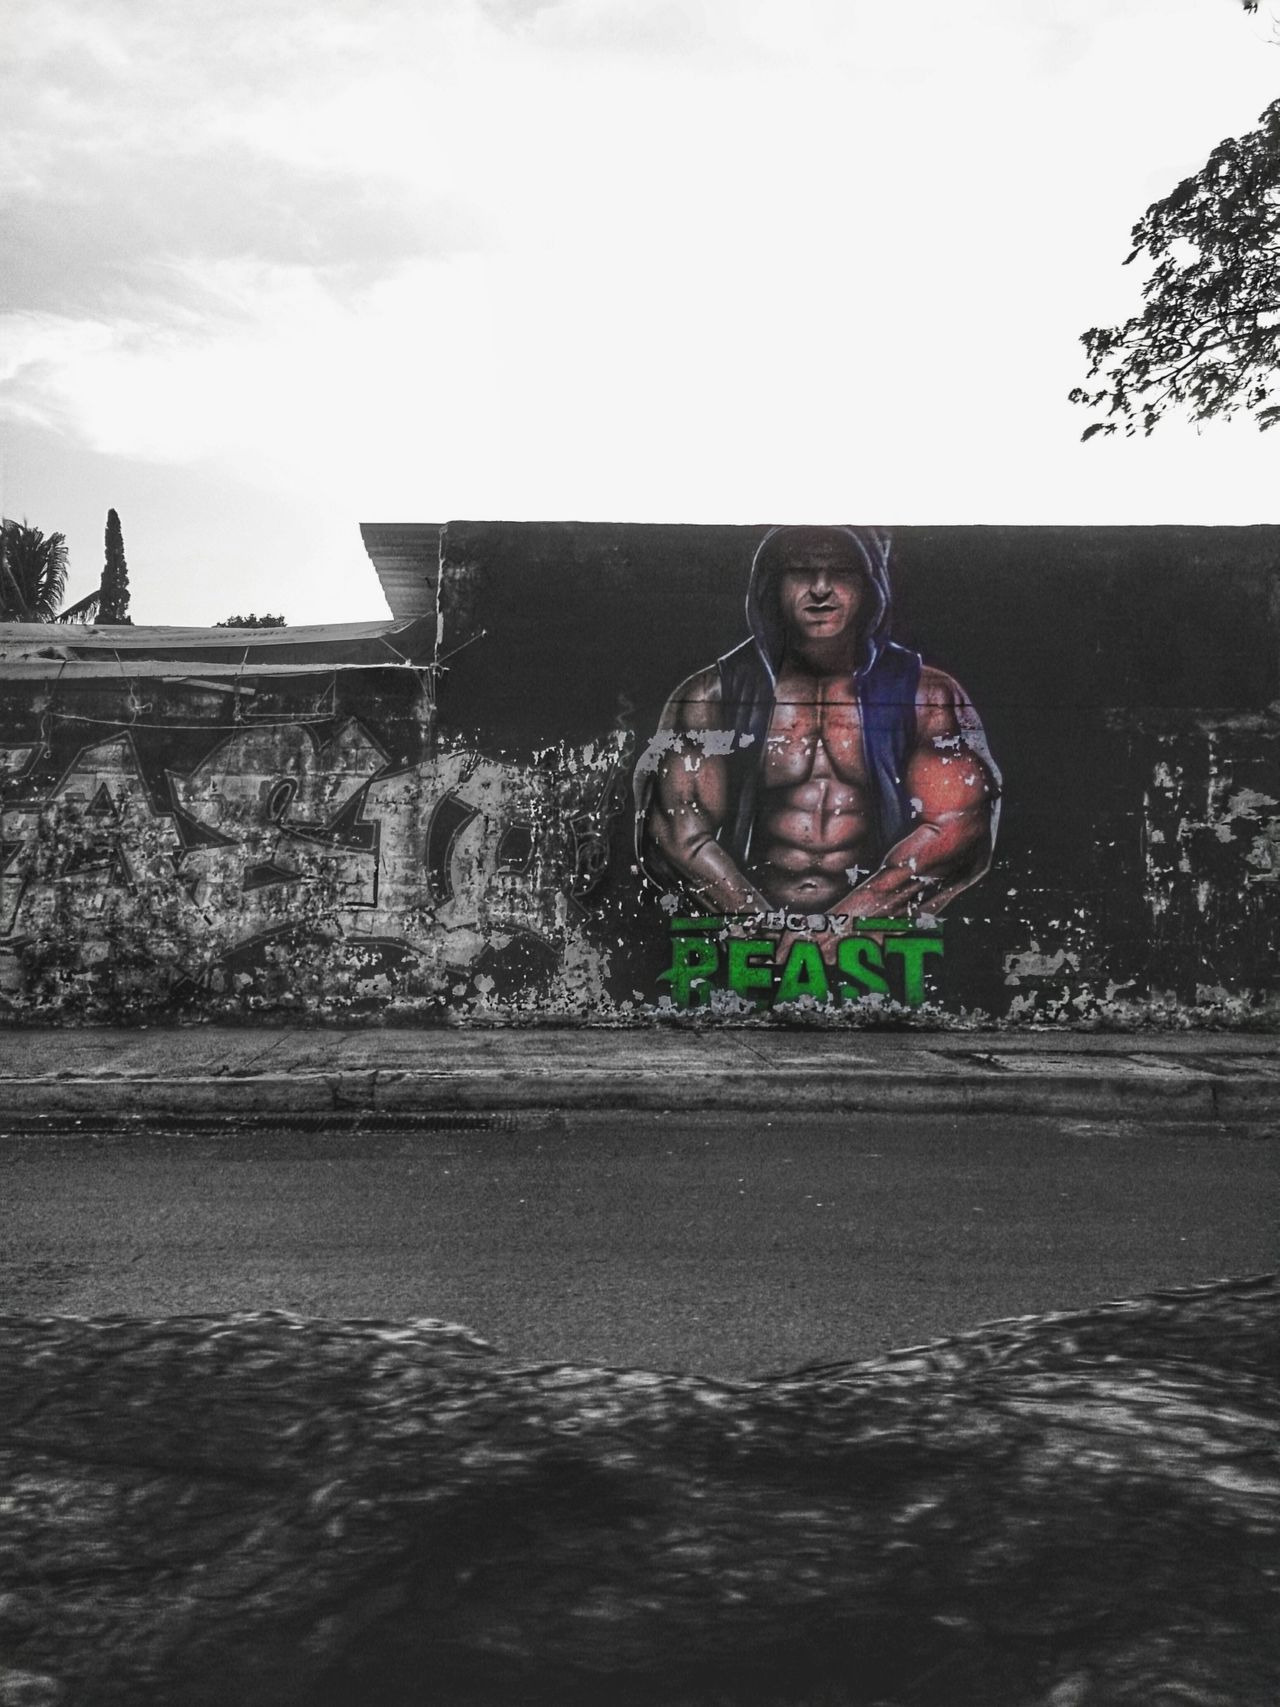 Graffiti on a wall. Graffiti Yucatan Mexico Urban Photography Mobile Photography City Life No People Xperia ZL Merida♡ Street Photography Outdoors Day Mérida Yucatán Wall Art Wall Painting/grafitti